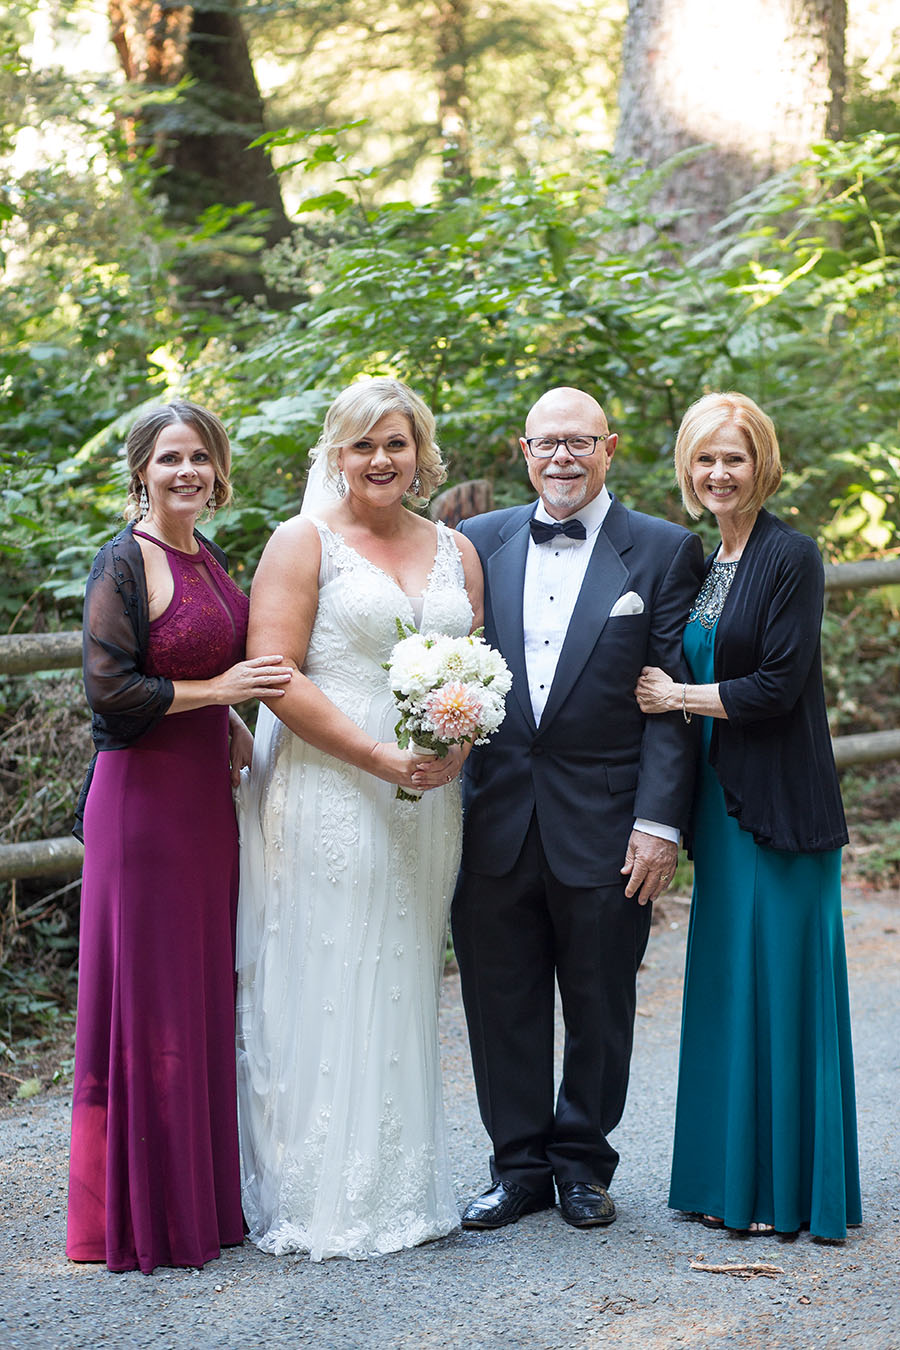 Hall at Fauntleroy West Seattle Wedding Photographer